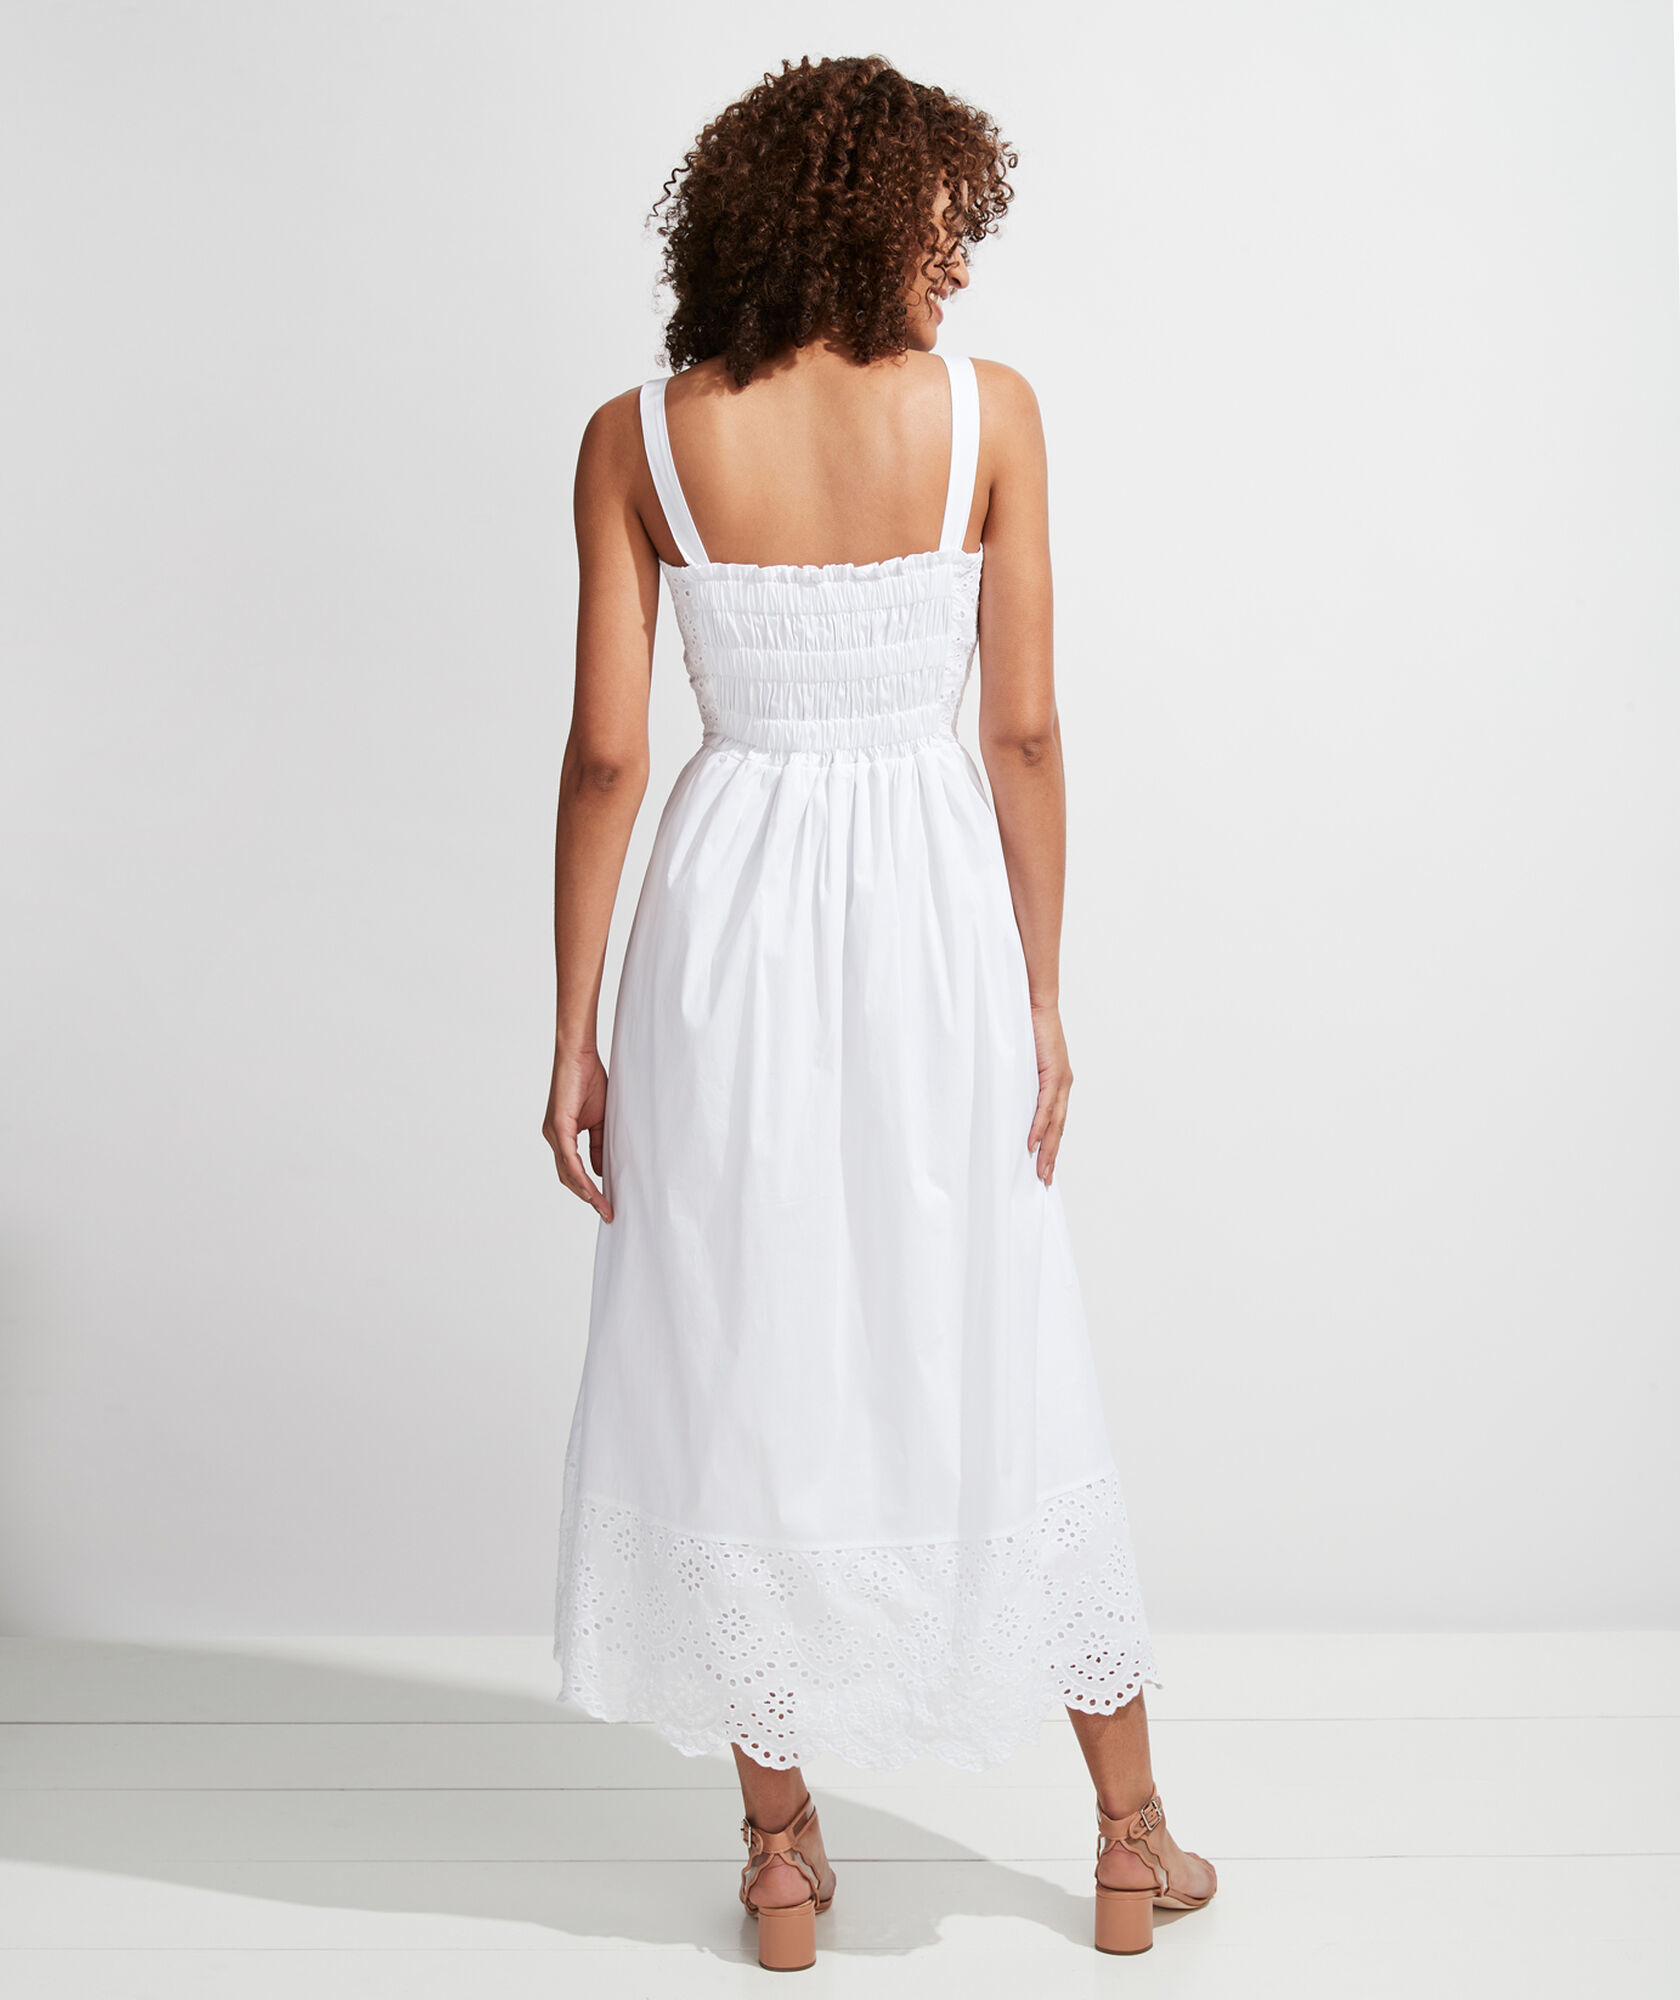 vineyard vines Palm Beach Lately Smocked Eyelet Maxi Dress